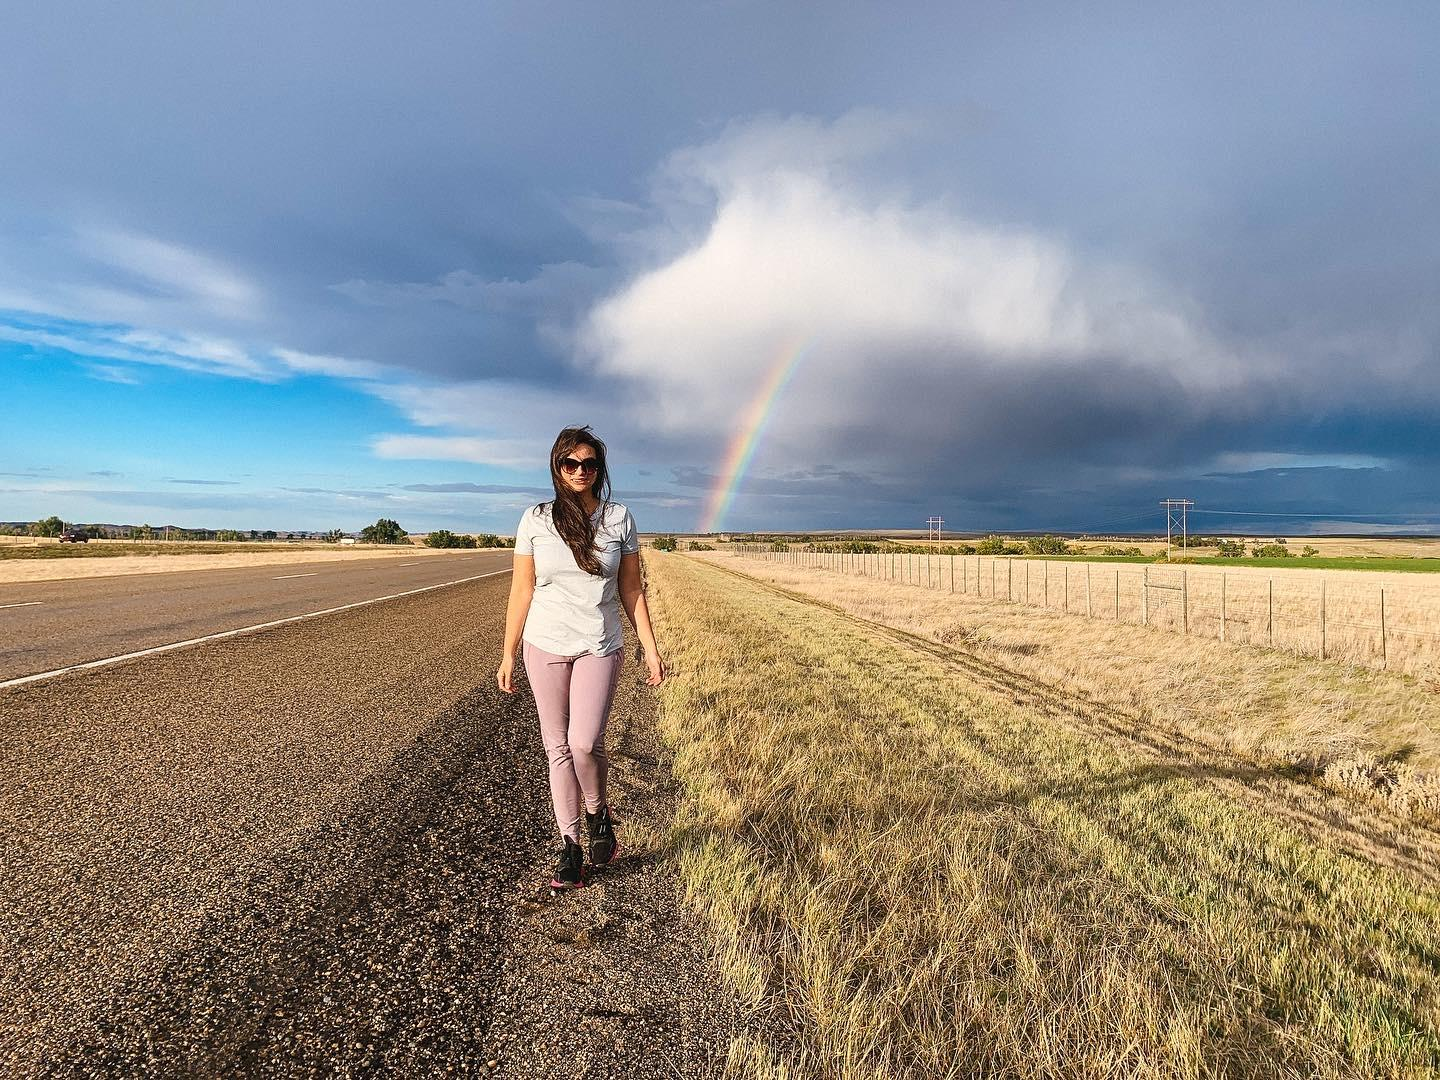 Walking roadside with a rainbow in background